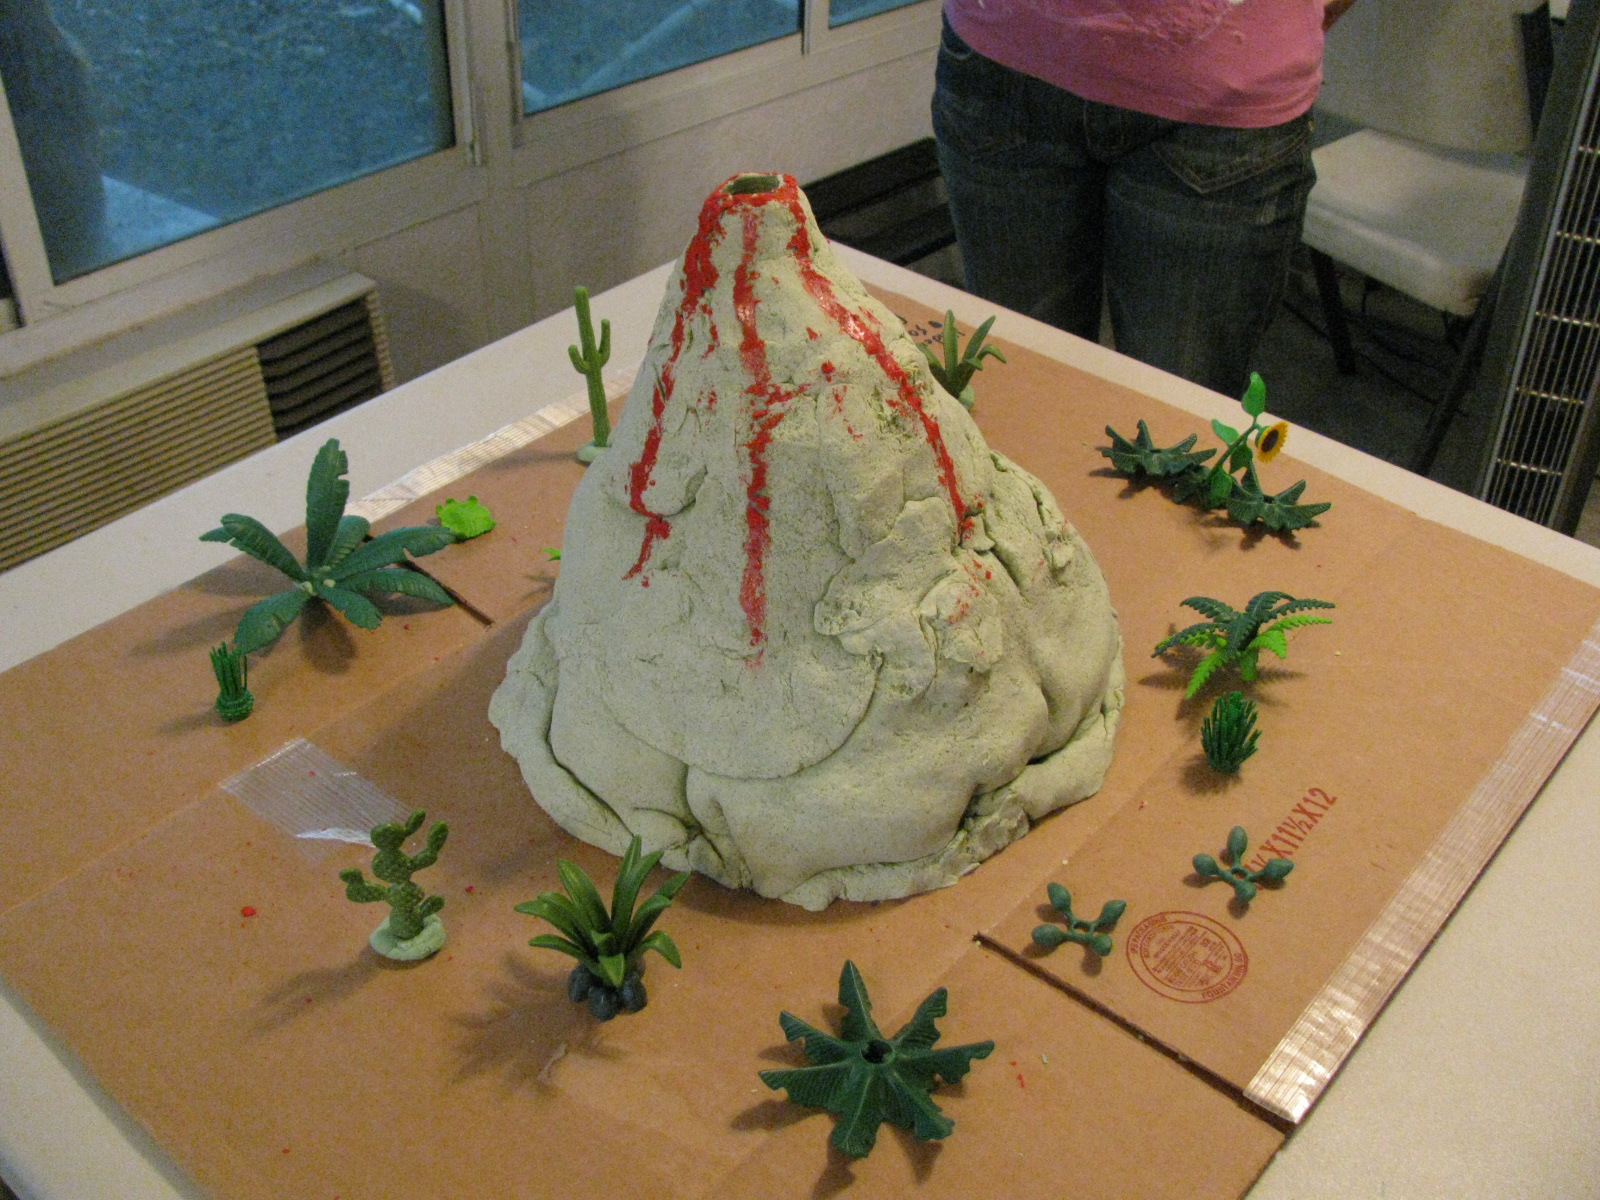 volcano science project This volcano science experiment is a fun activity to do at home or would make a great school science fair projects experiment.